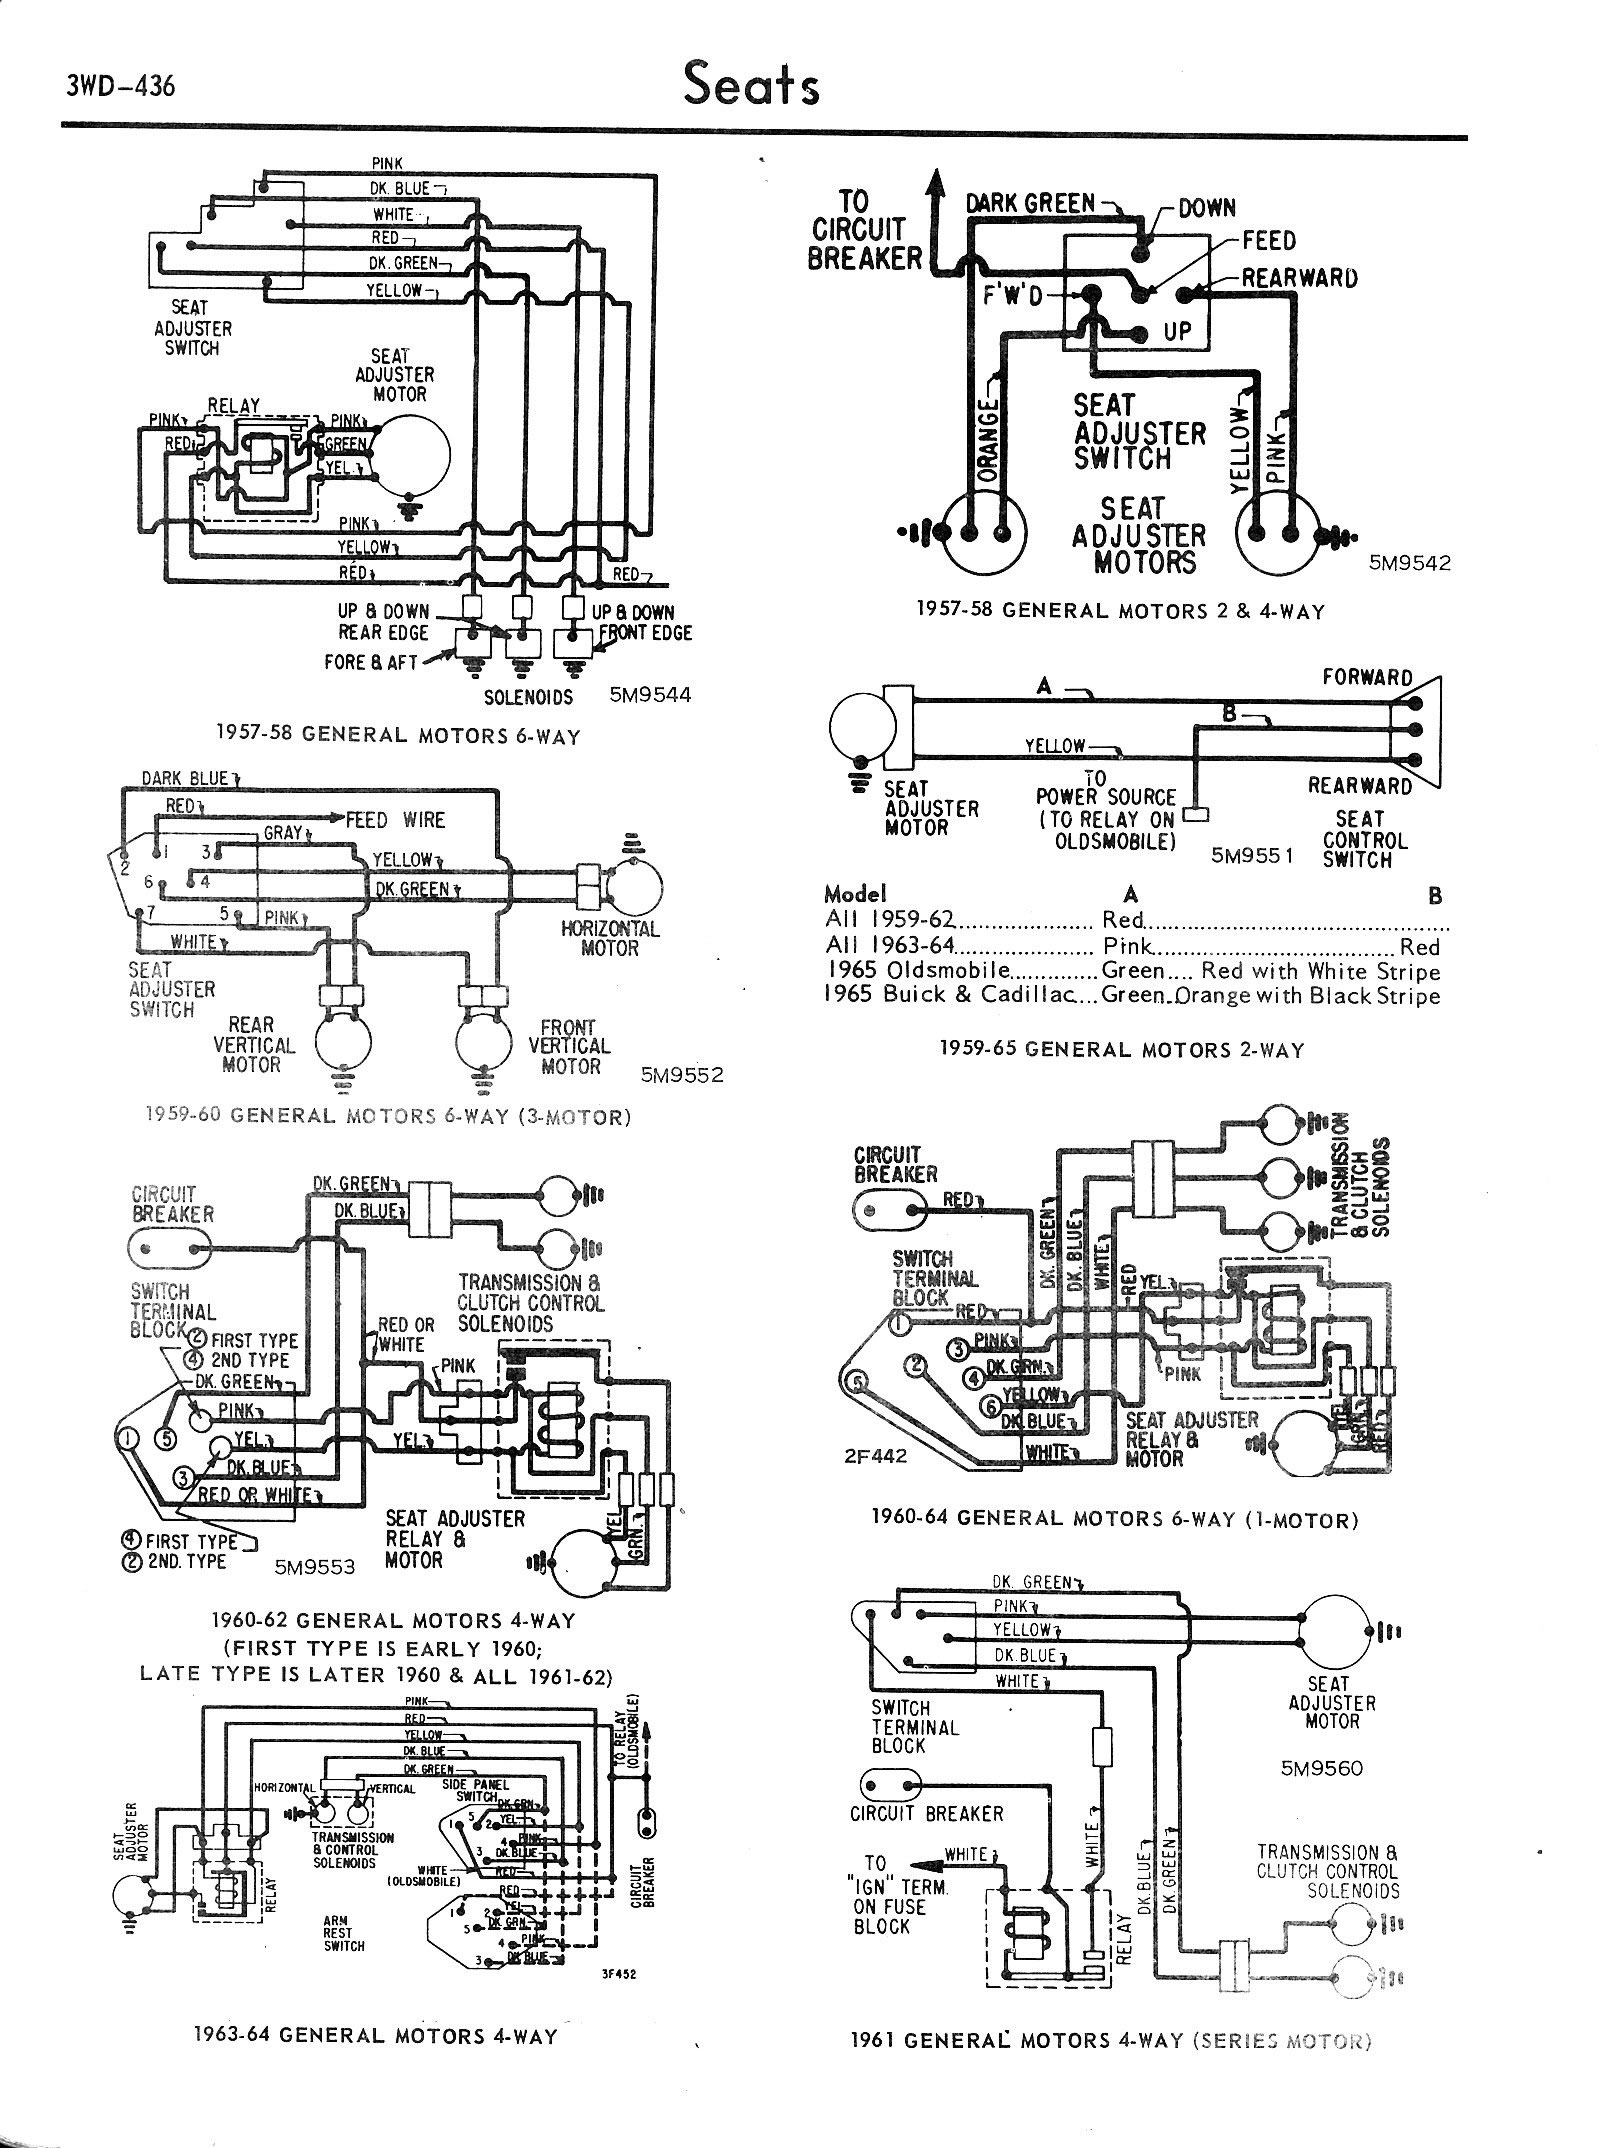 Chevy Diagrams 6 Way Switch Wiring Diagram Ford C 57 64 Gm A Mix Of 2 4